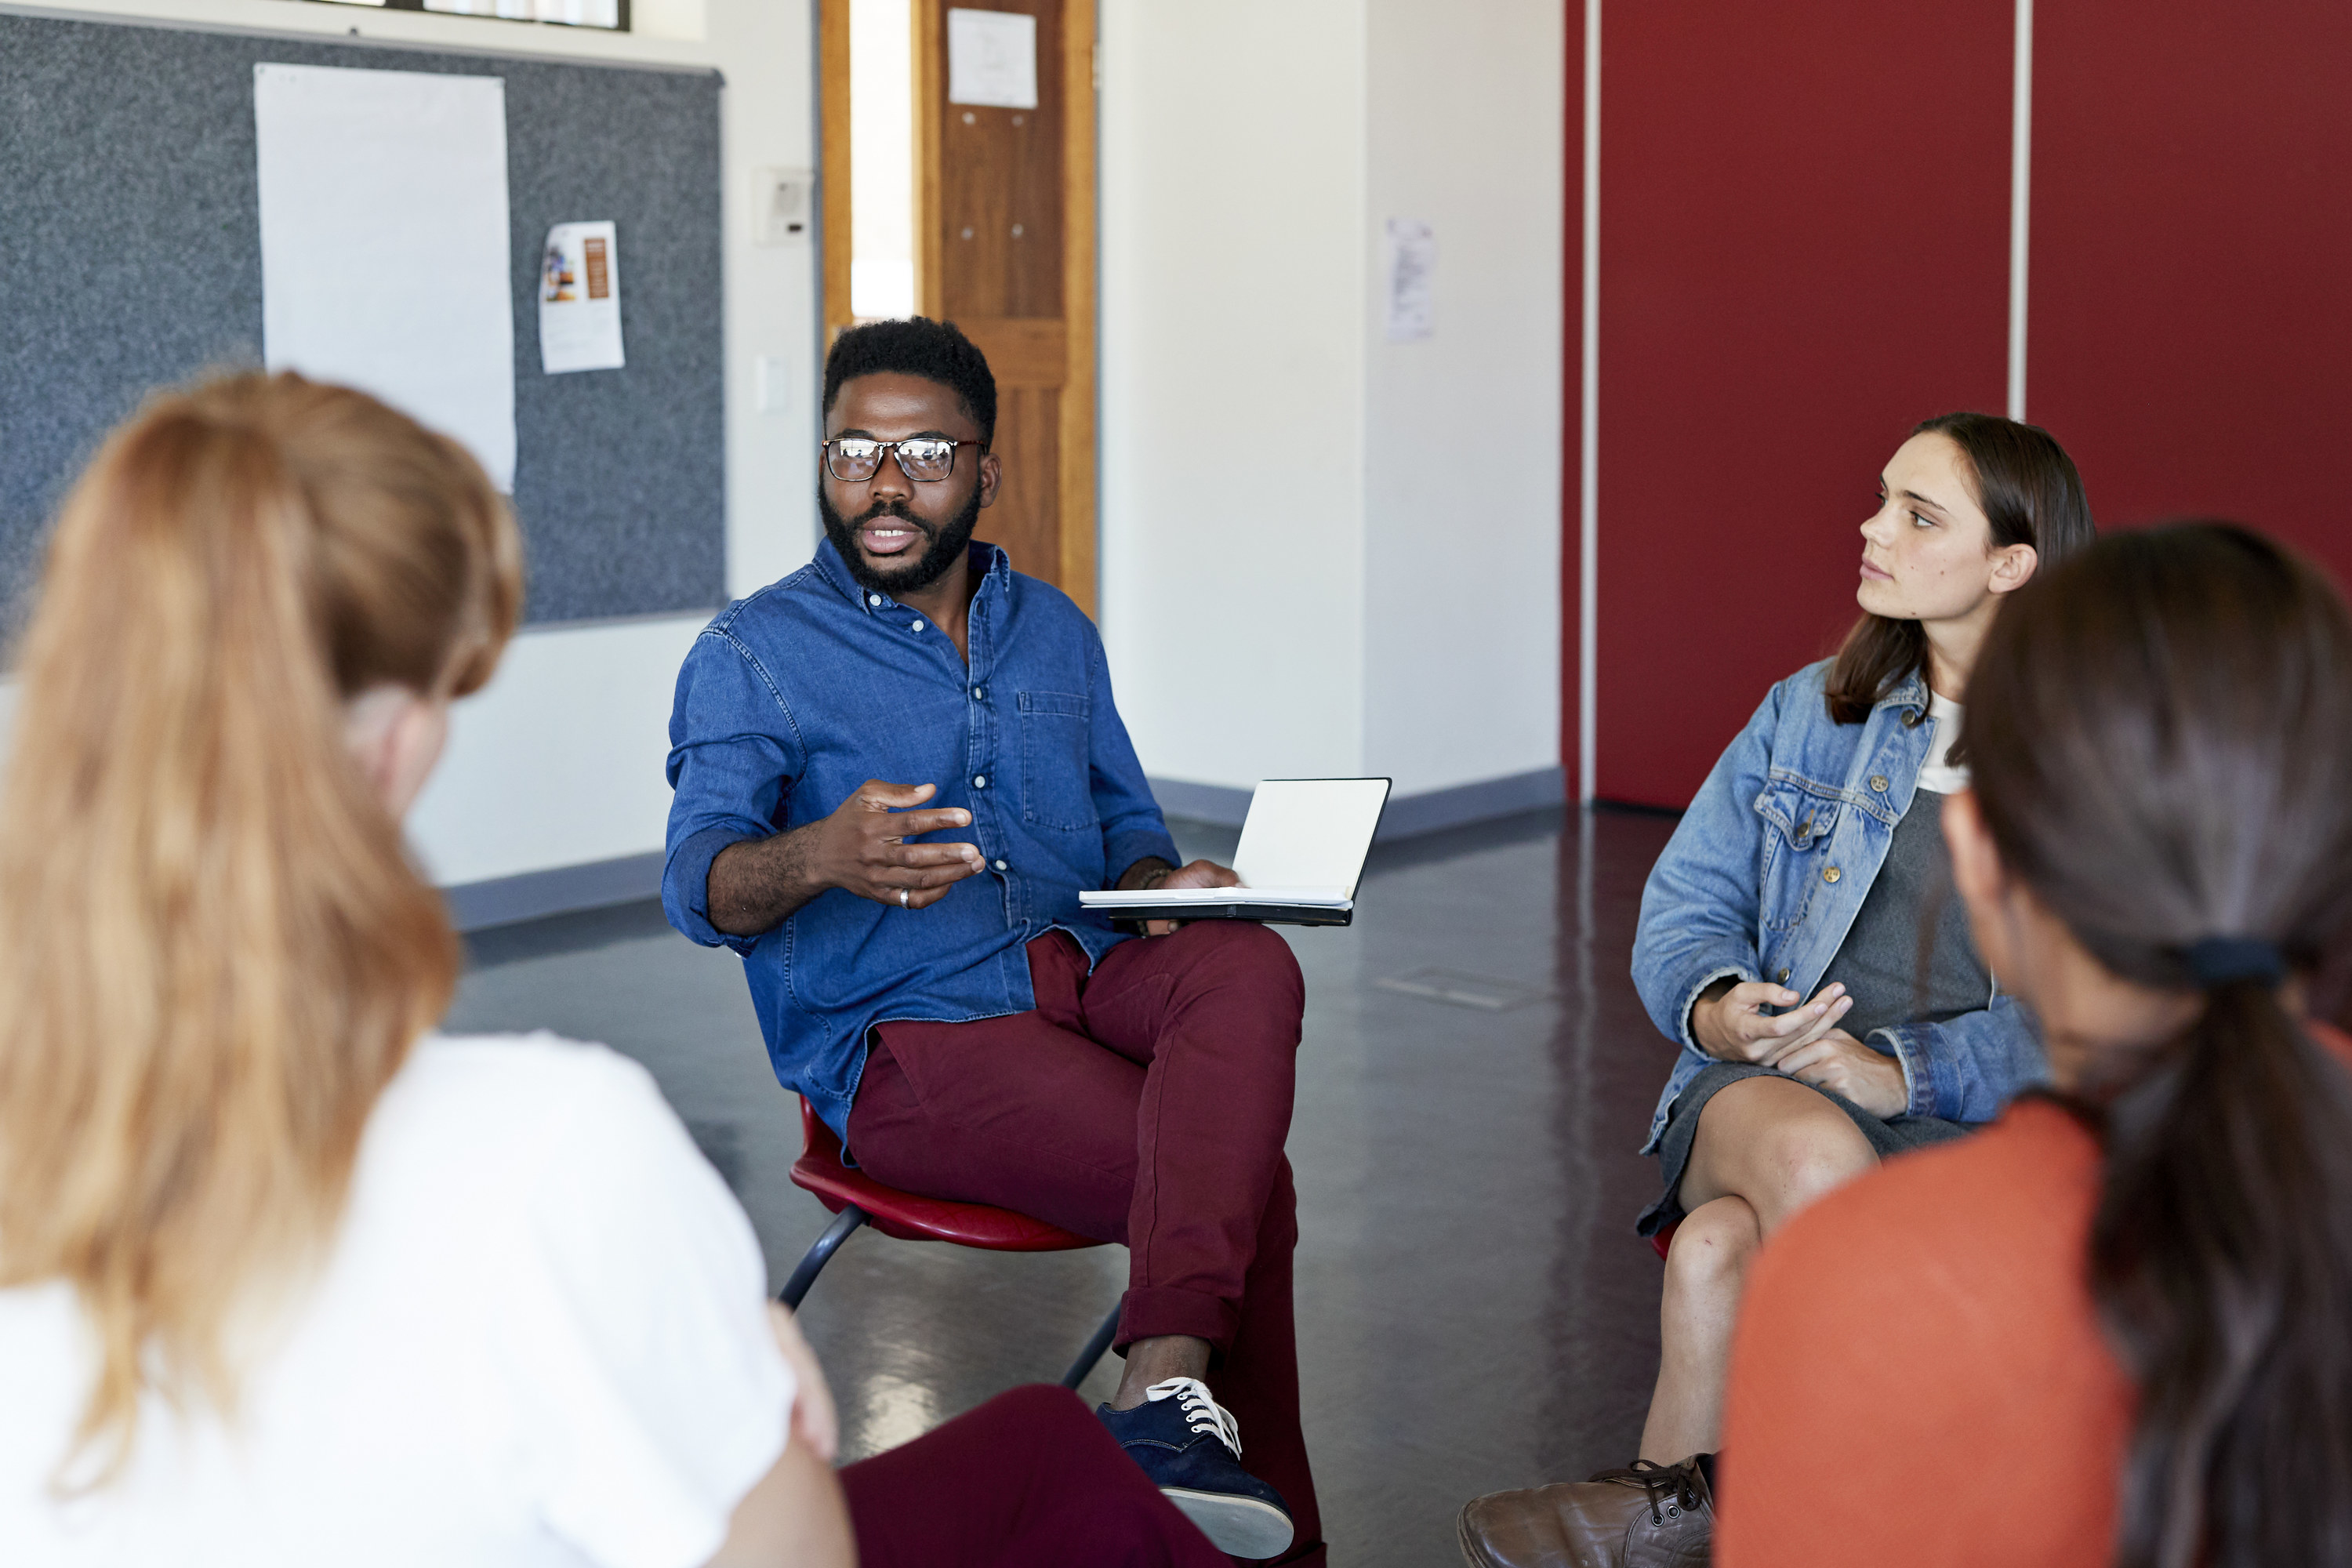 Professor talking with college students in a discussion group